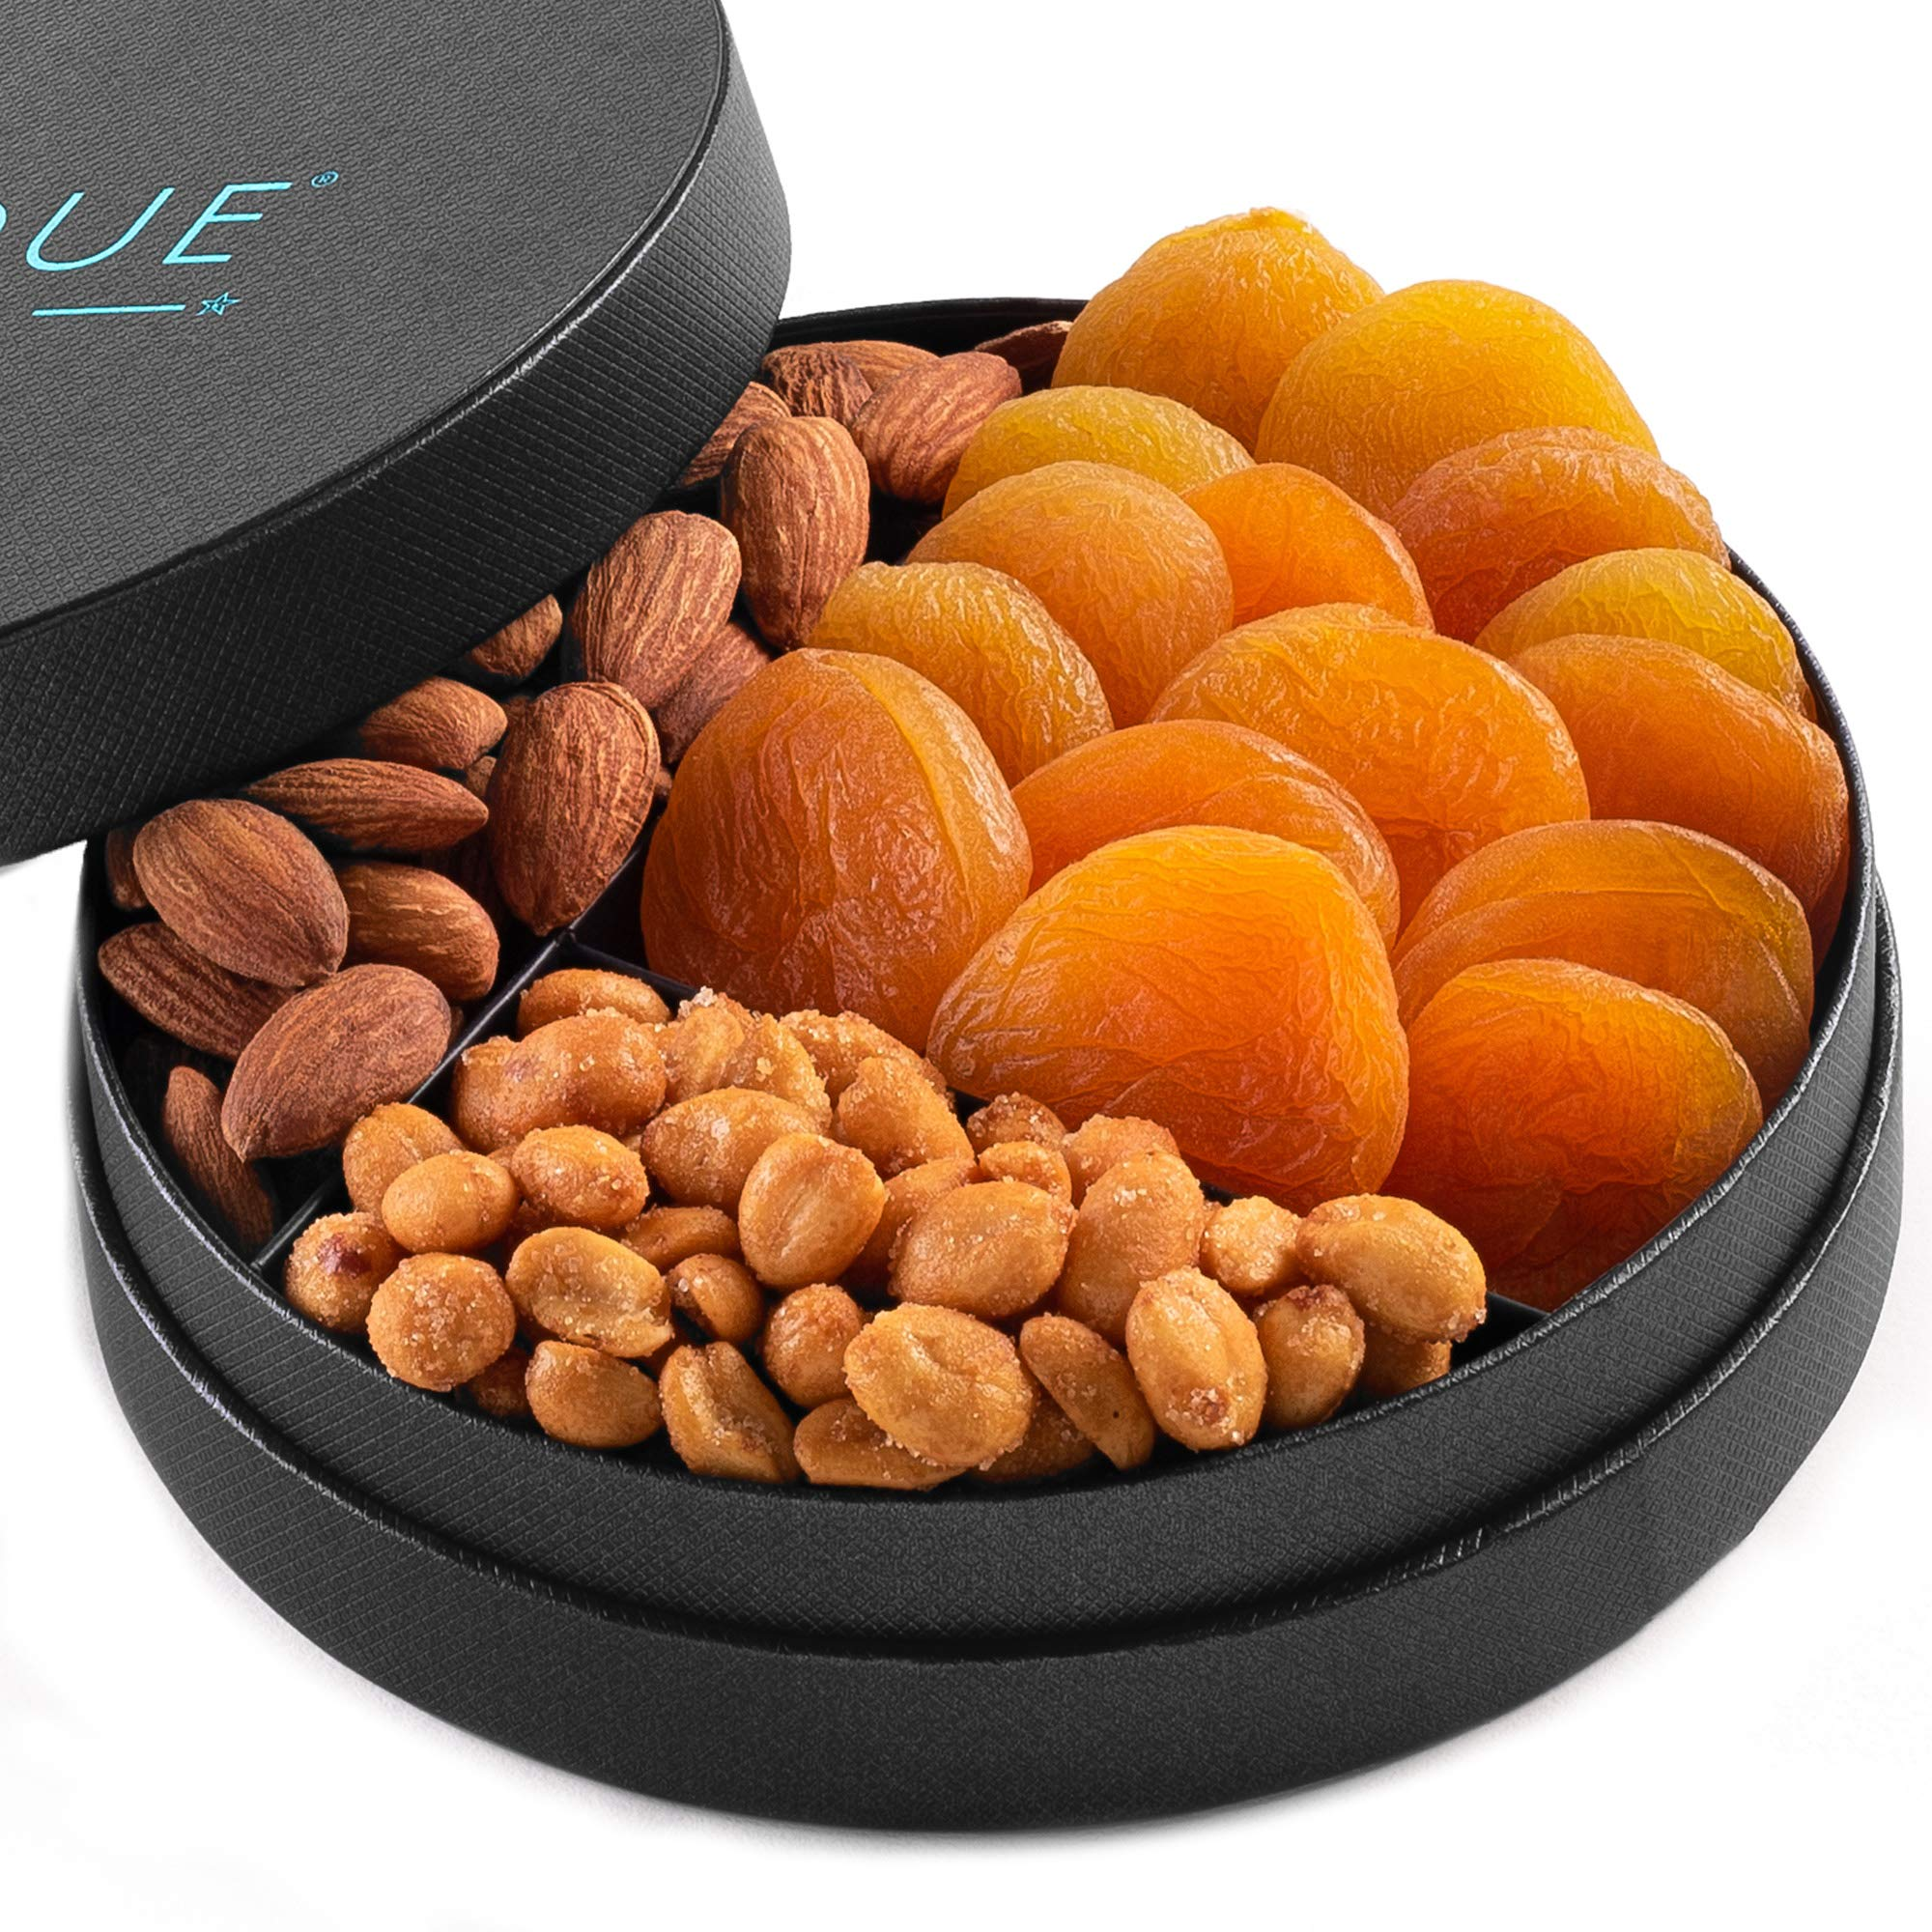 Gourmet Nut and Dried Fruit Gift Tray - 6'', Freshly Roasted Assorted Nuts & Dried Fruit for Mothers Day, Fathers Day, Holiday and Corporate Gifting